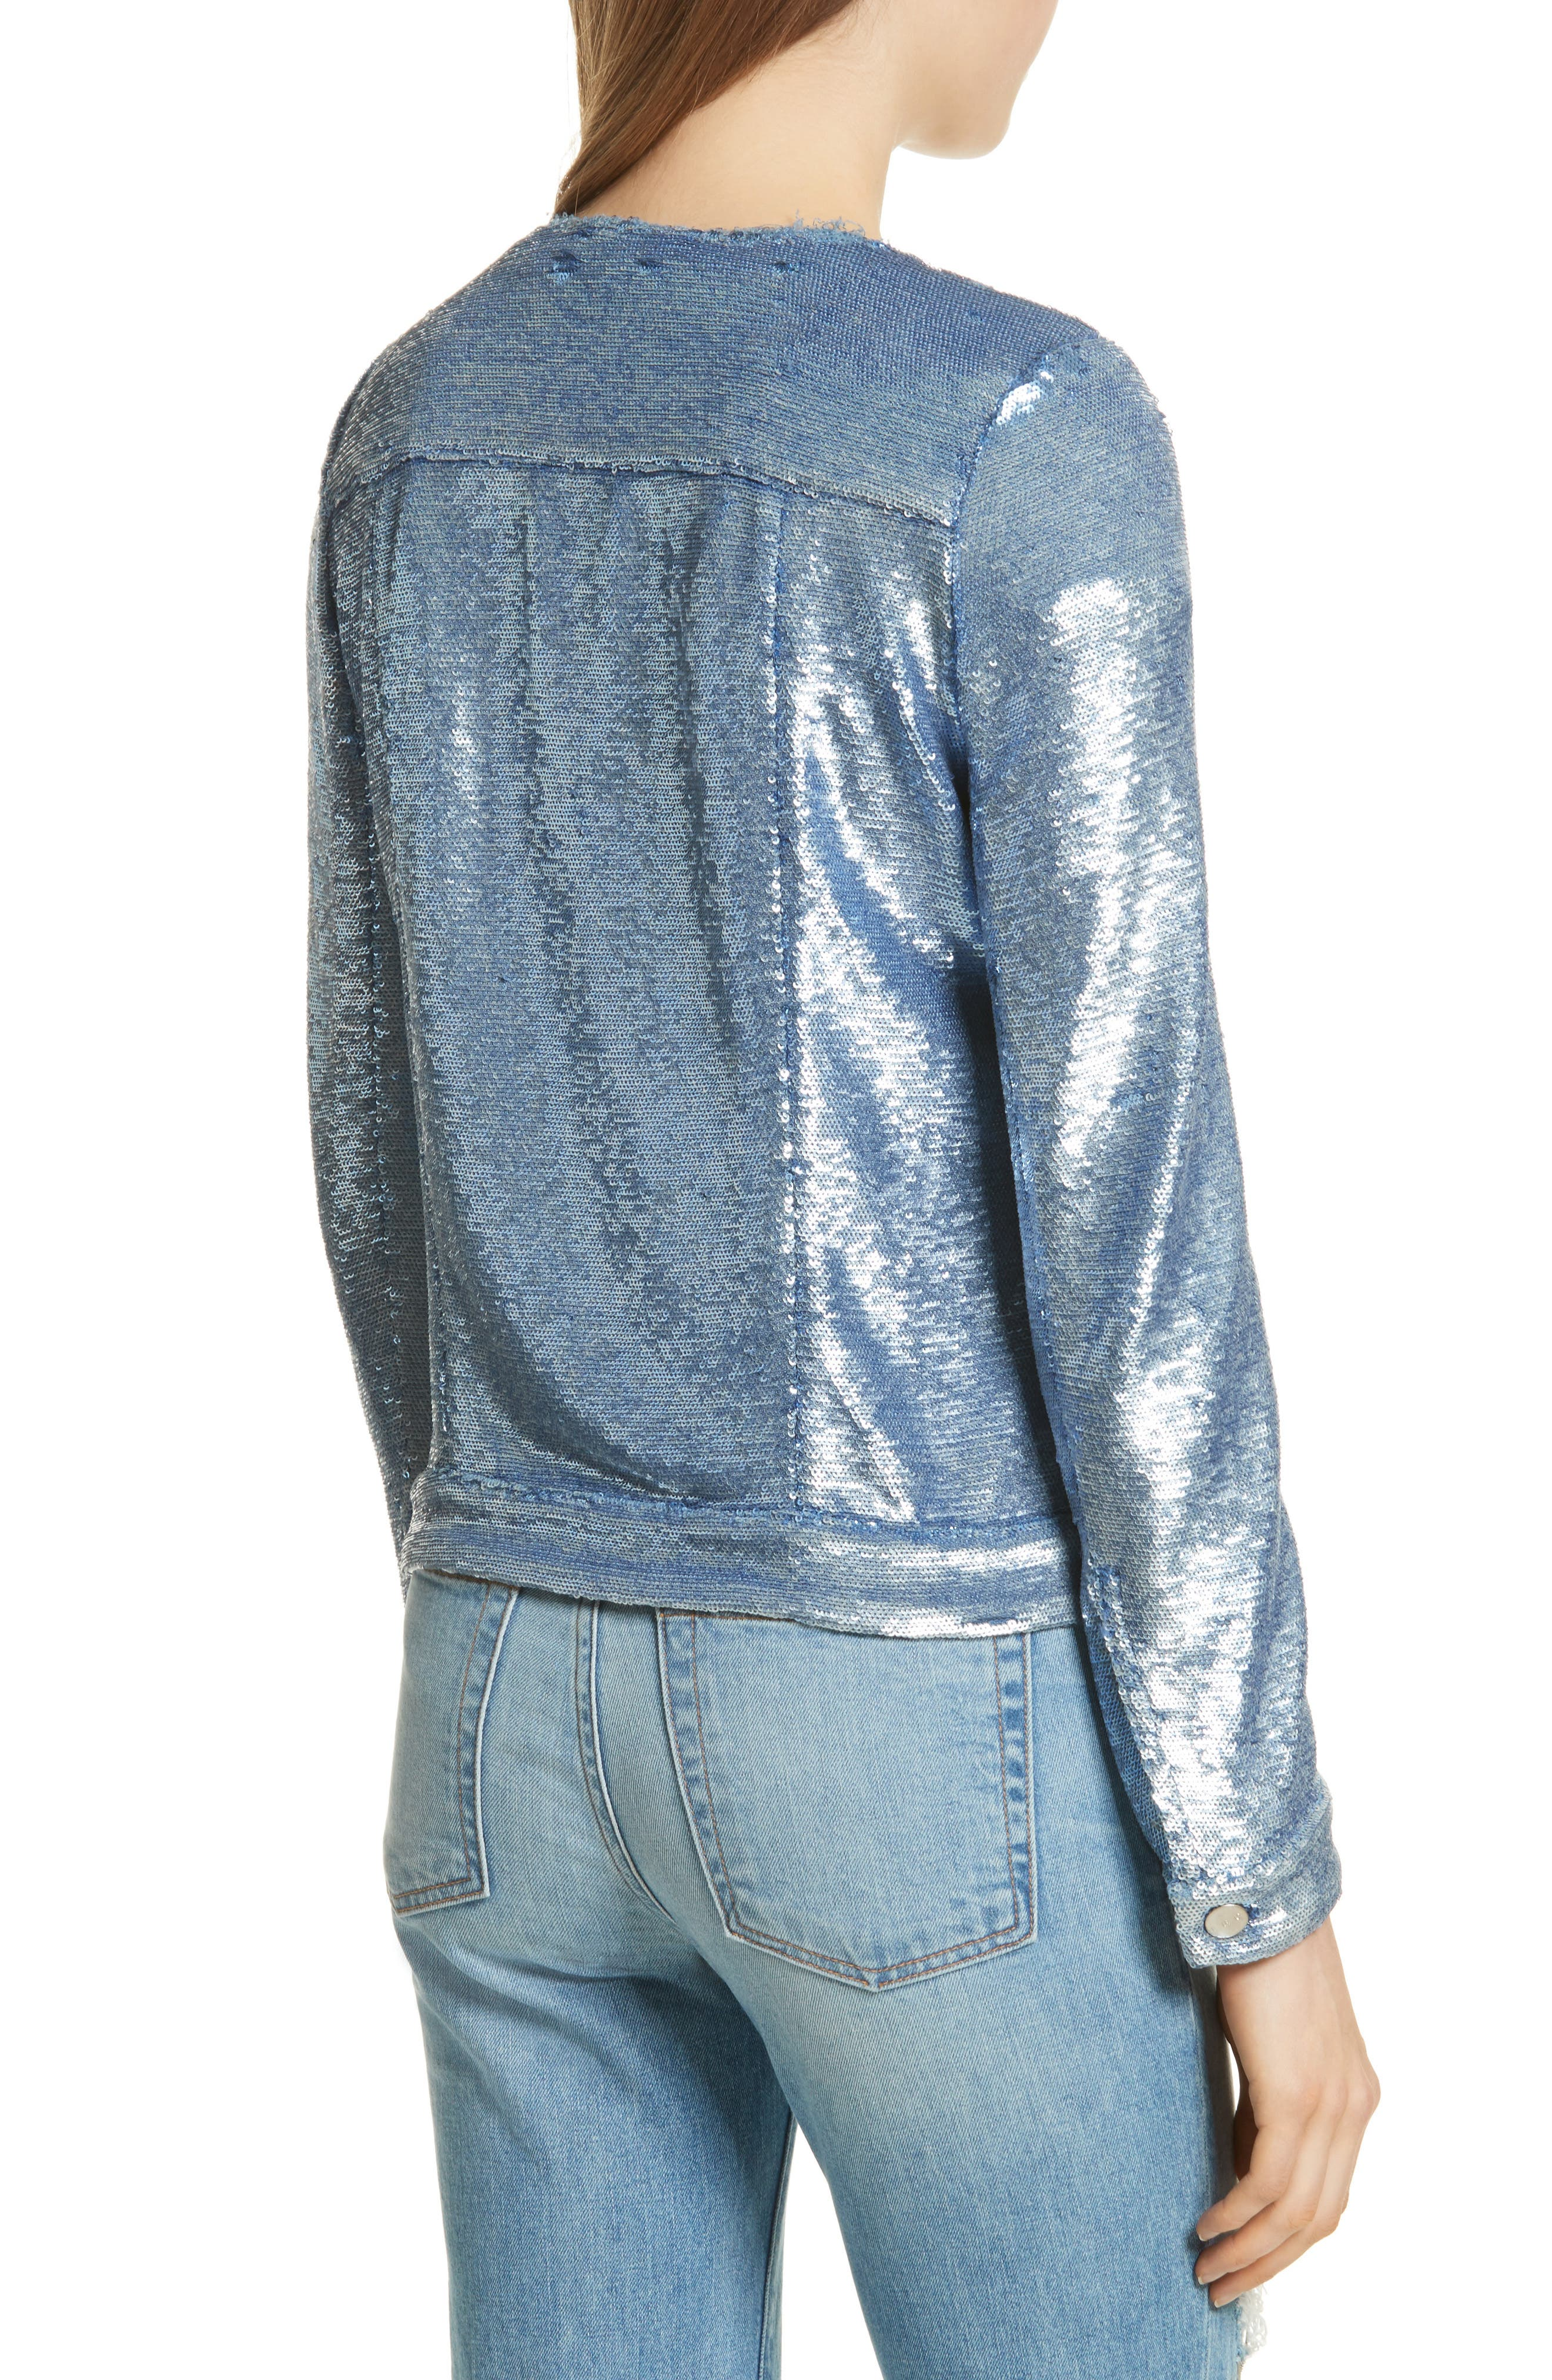 Dalome Sequin Jacket,                             Alternate thumbnail 2, color,                             Blushed Blue